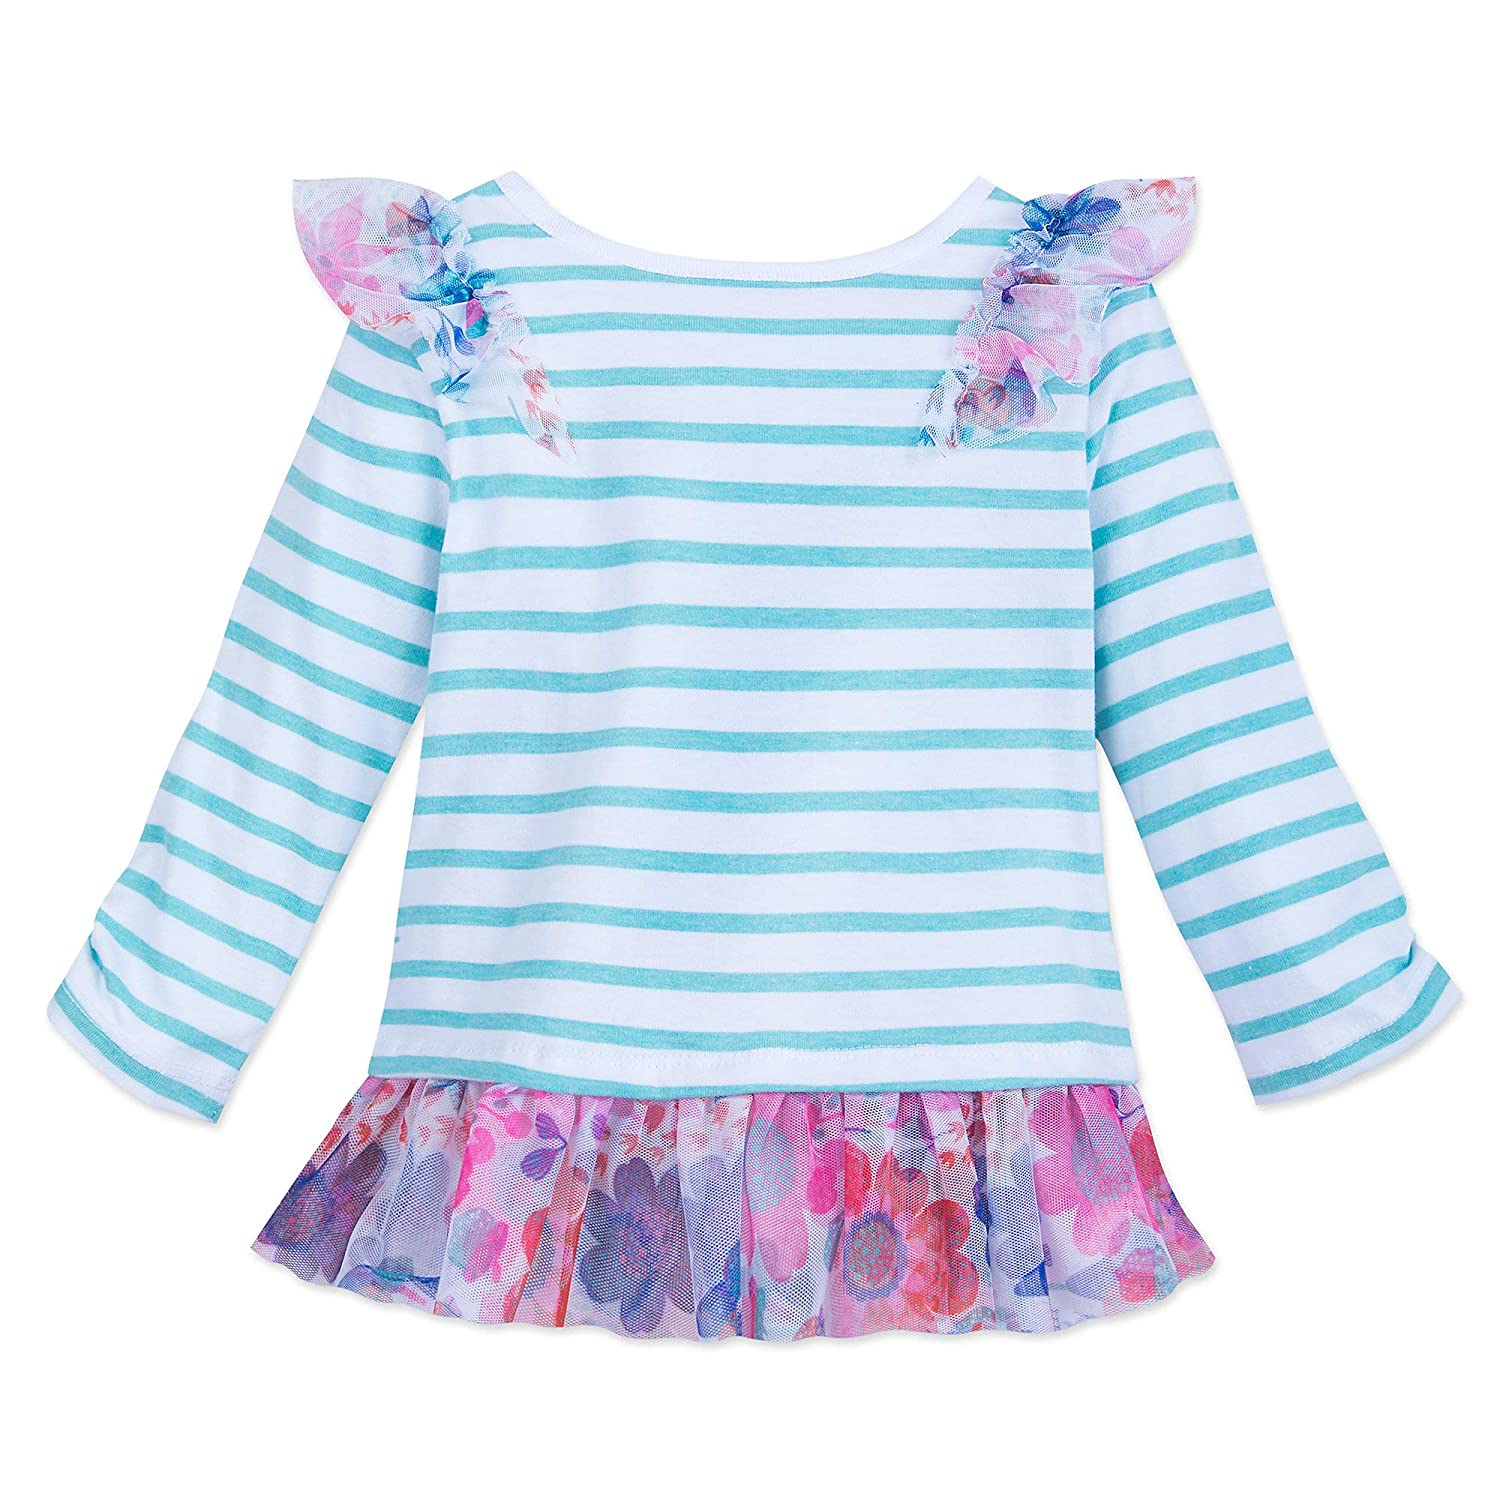 Disney Bambi Striped Top and Jean Set for Girls Furrytale Friends Blue